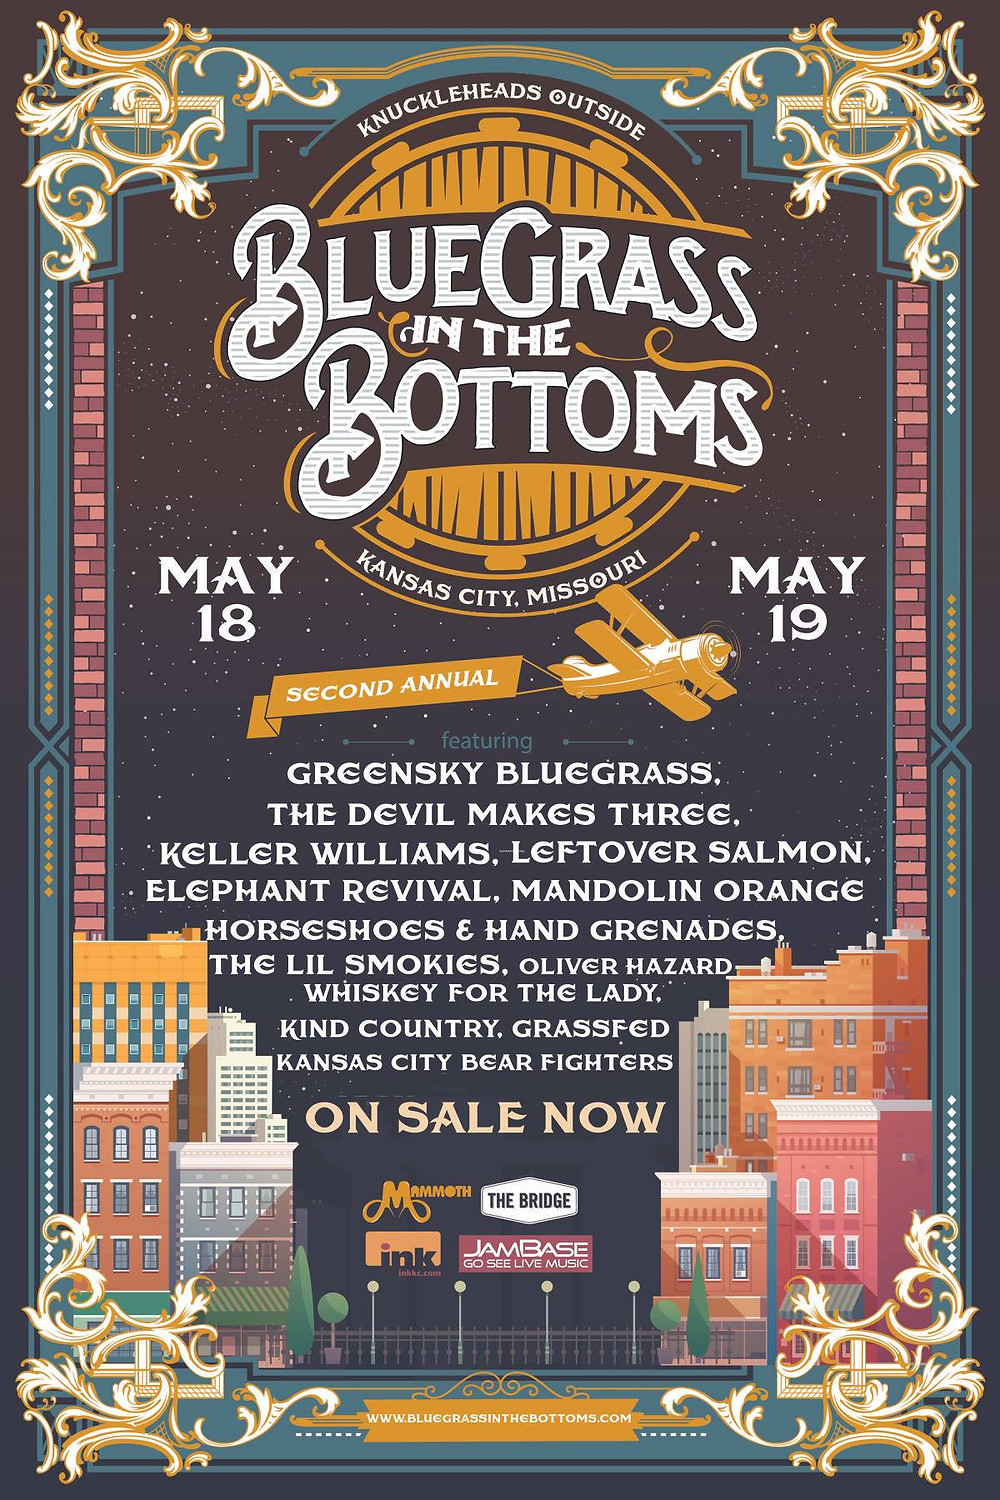 Bluegrass in the Bottoms flier